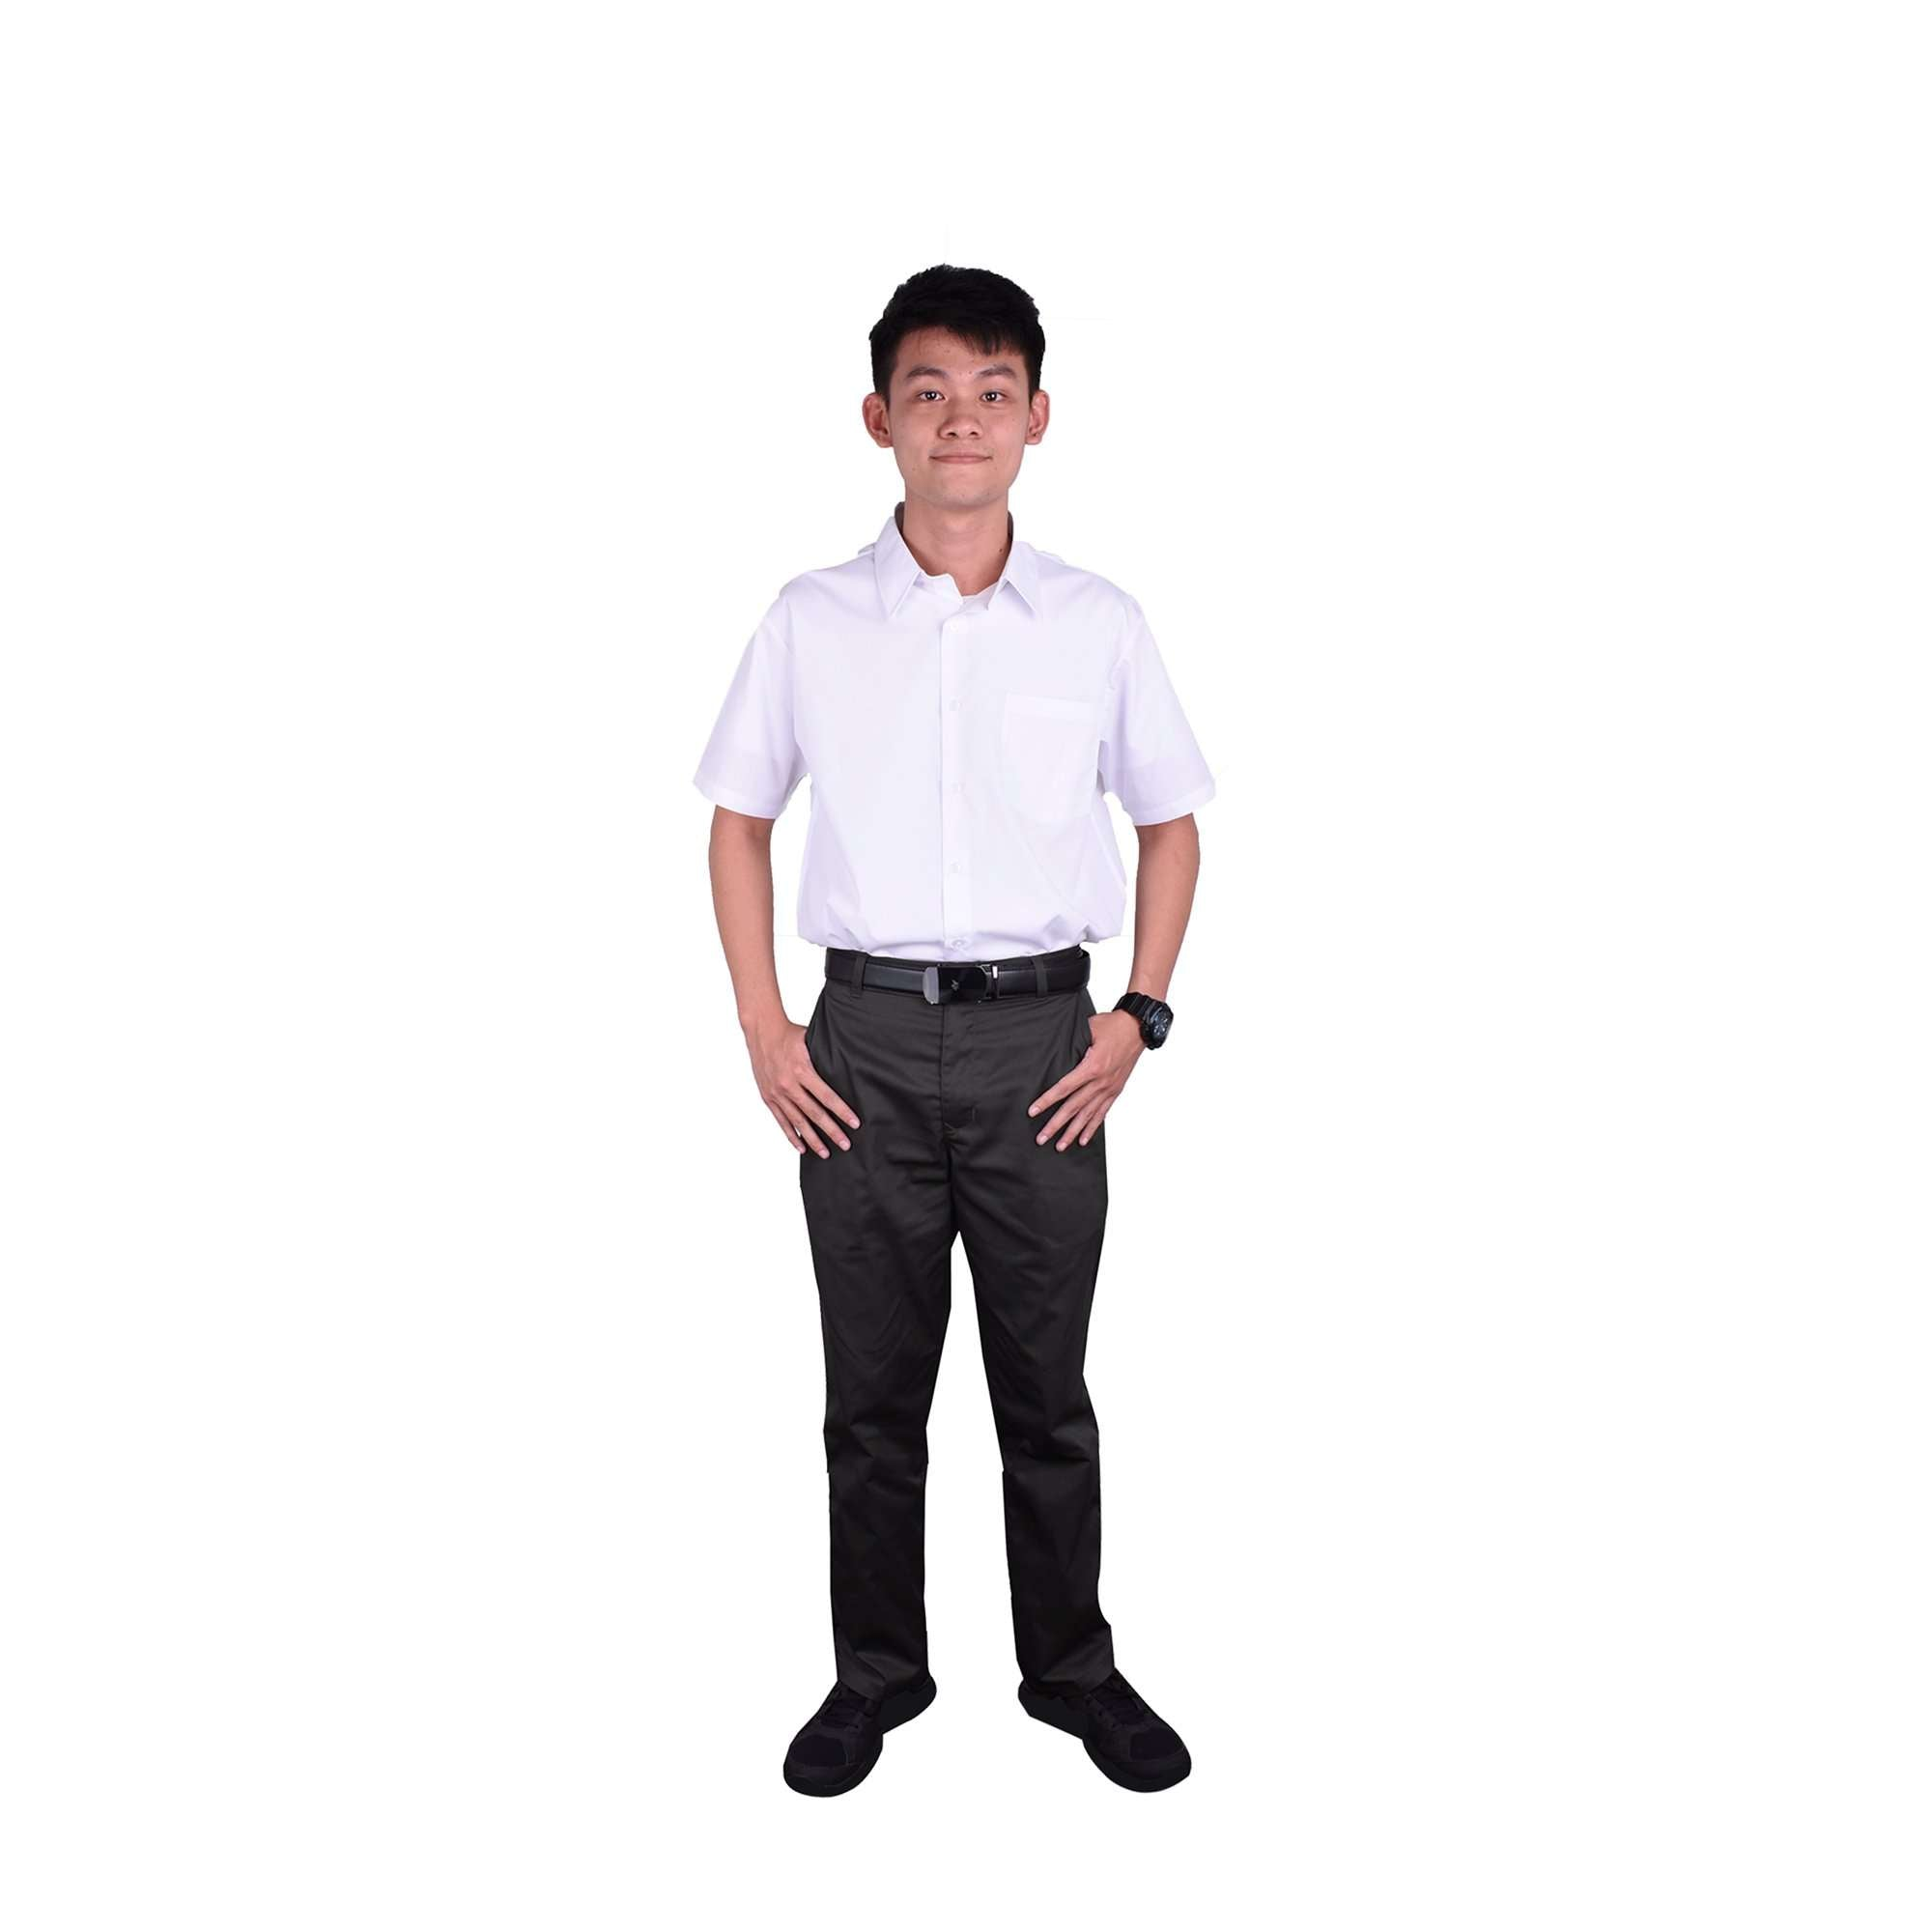 K-SECONDARY BOY SCHOOL UNIFORM Short Sleeve Shirt - WHITE X950109-1401-W0 : Buy K-Secondary online at CMG.MY